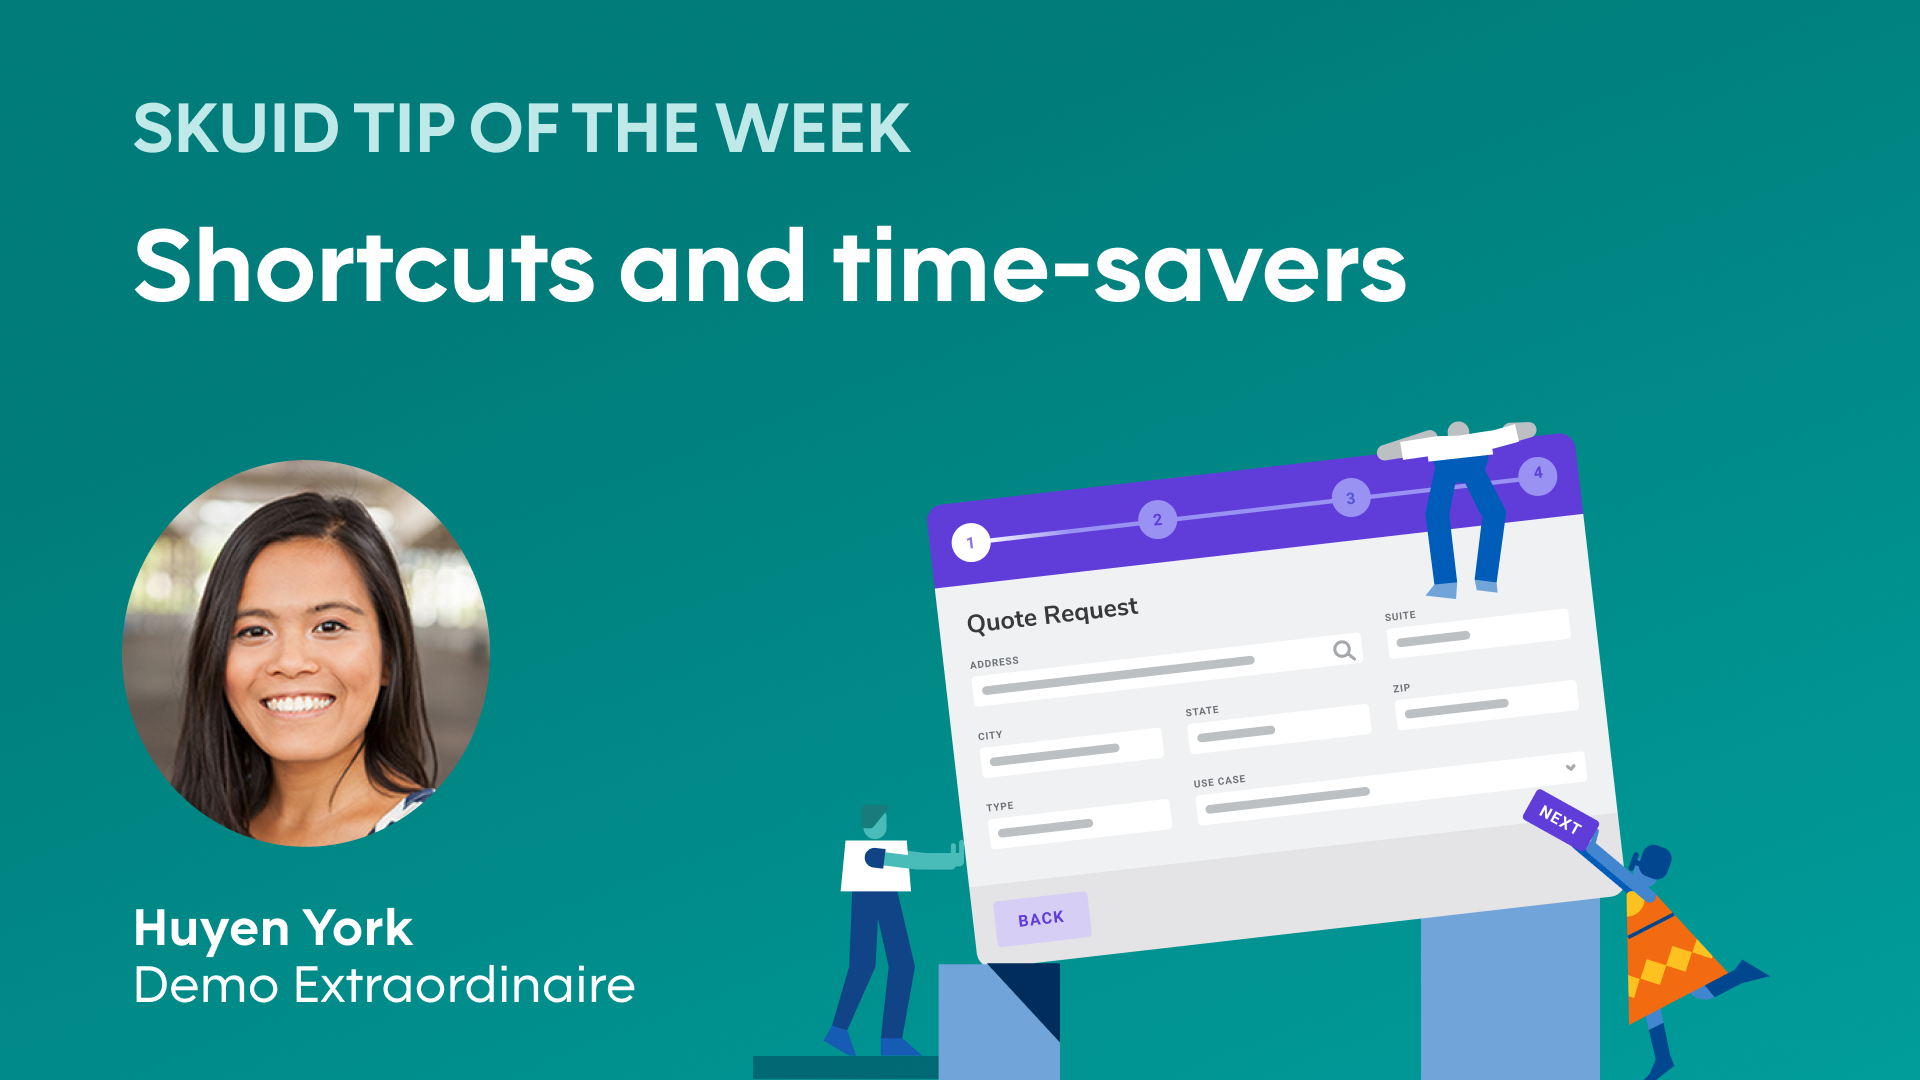 Shortcuts and time-savers | Skuid tip of the week